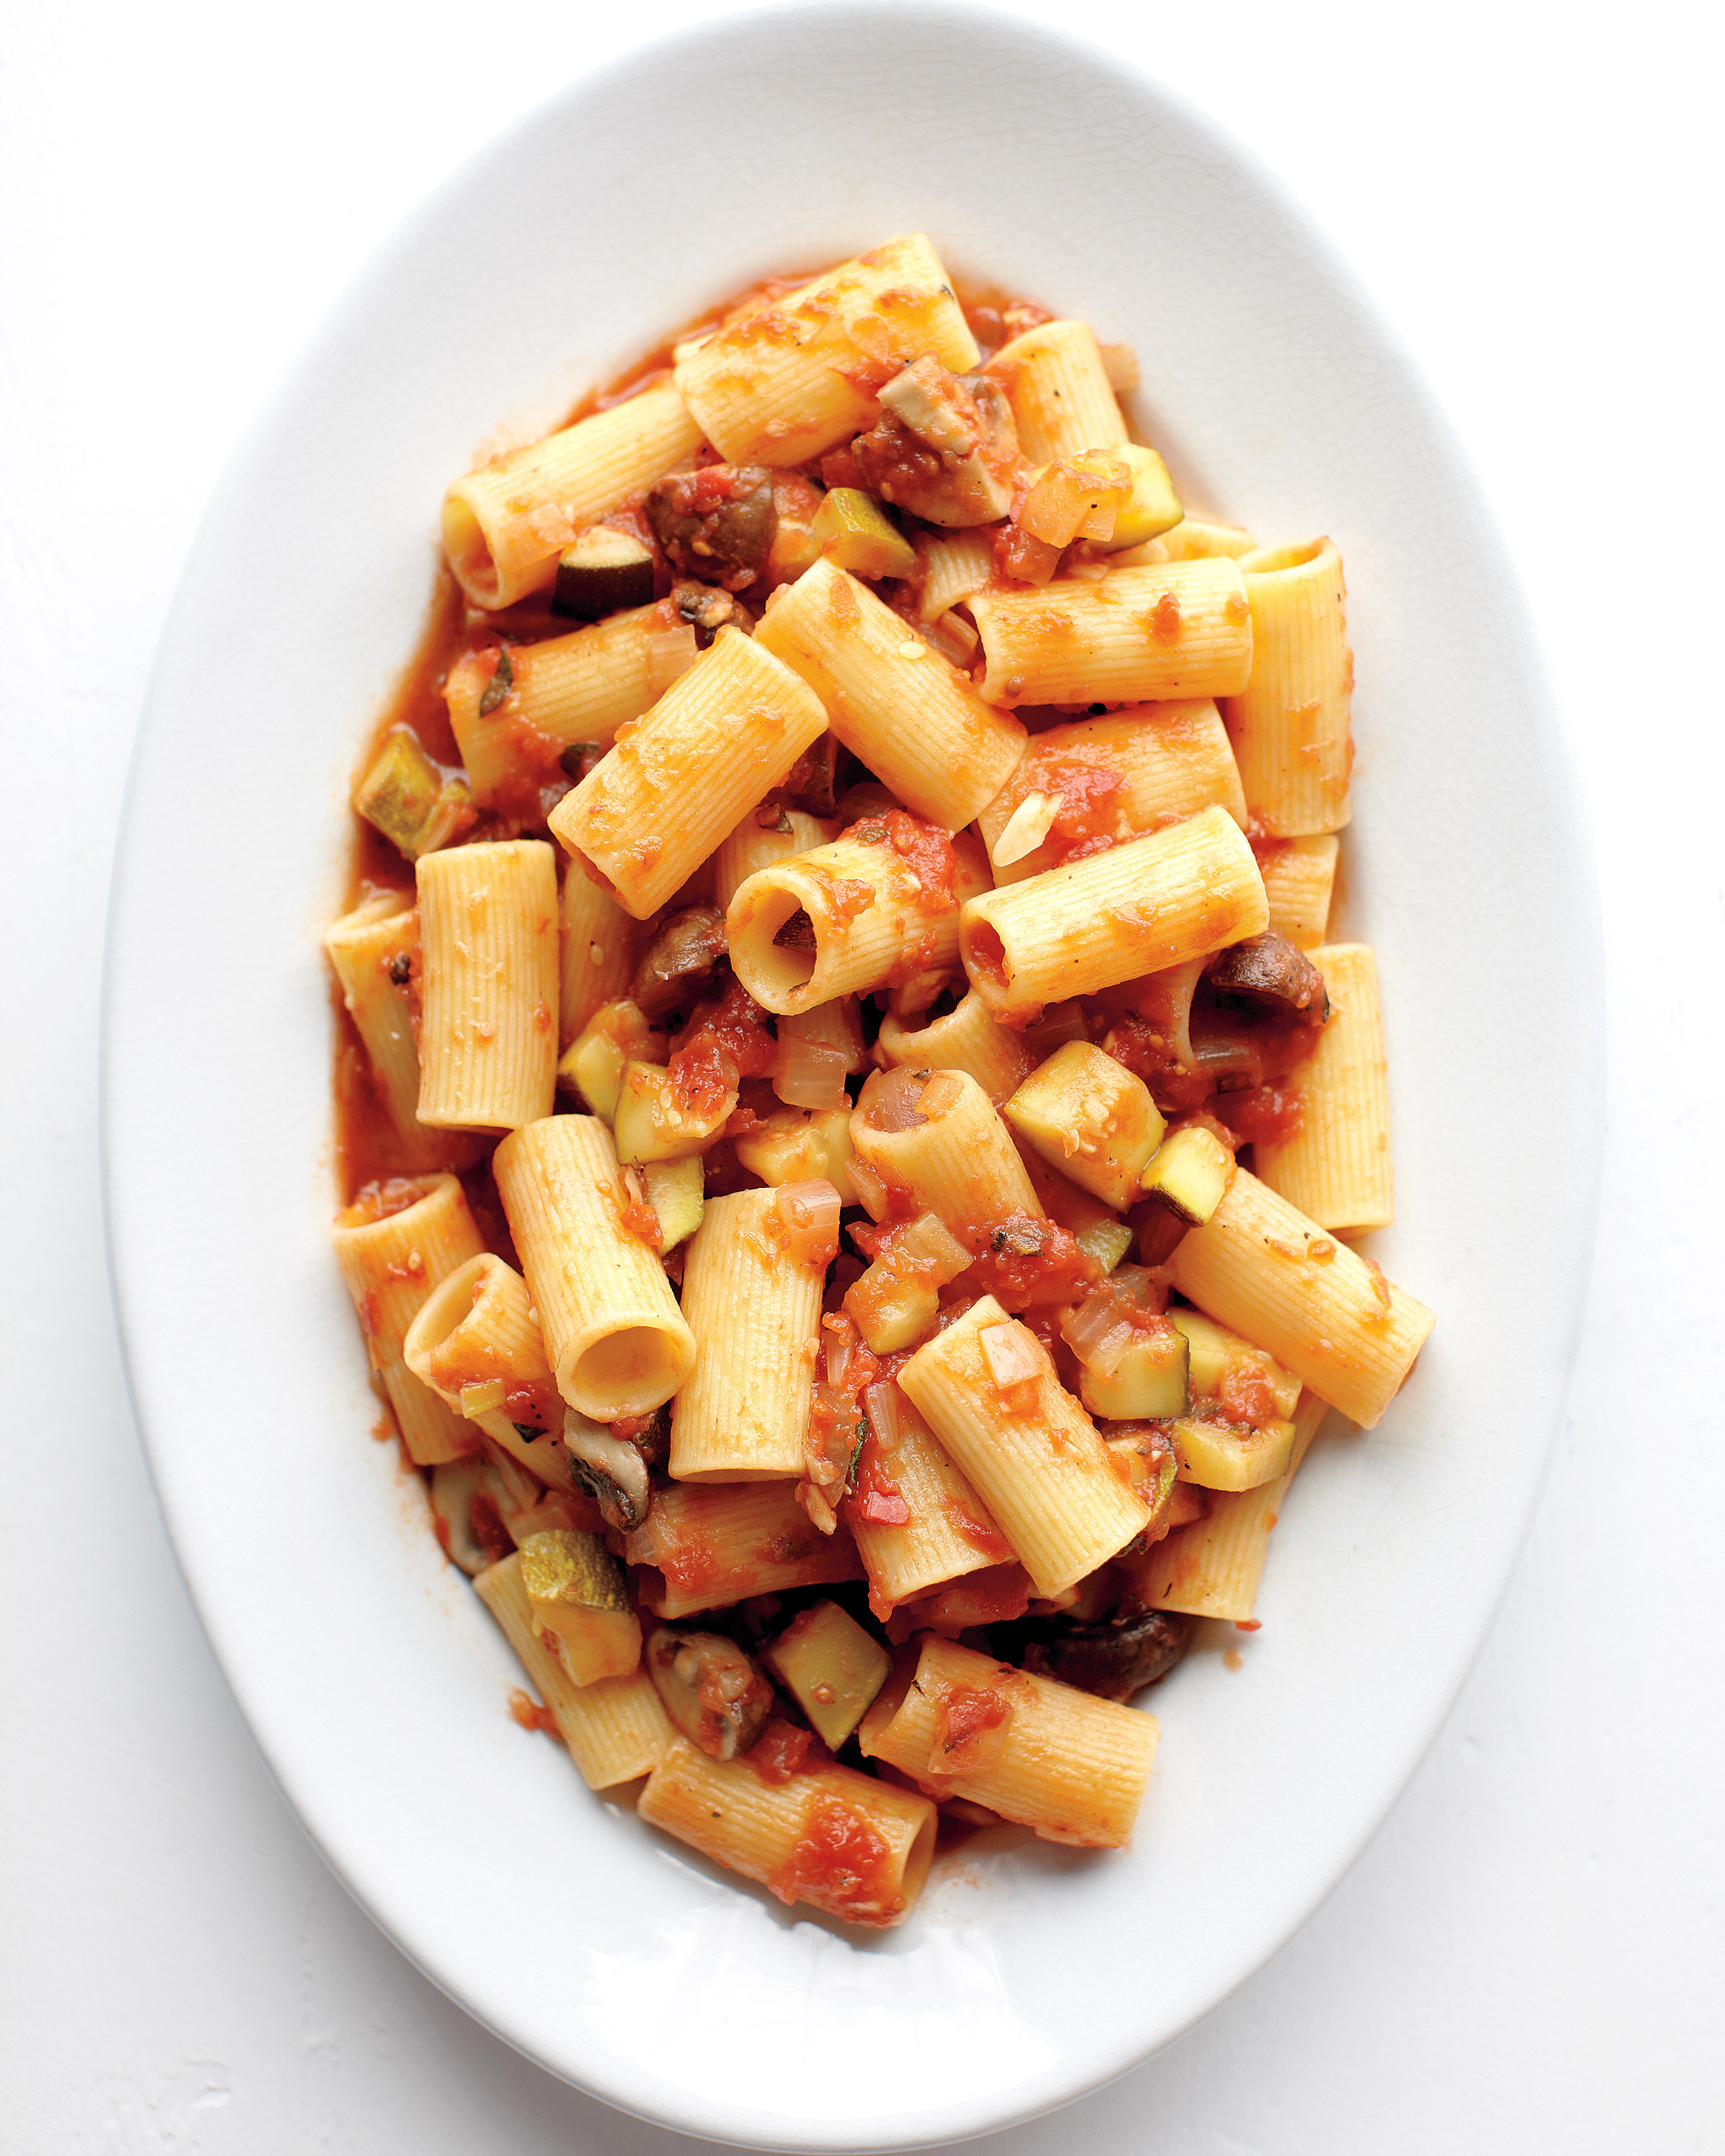 Rigatoni with Chunky Vegetable Sauce